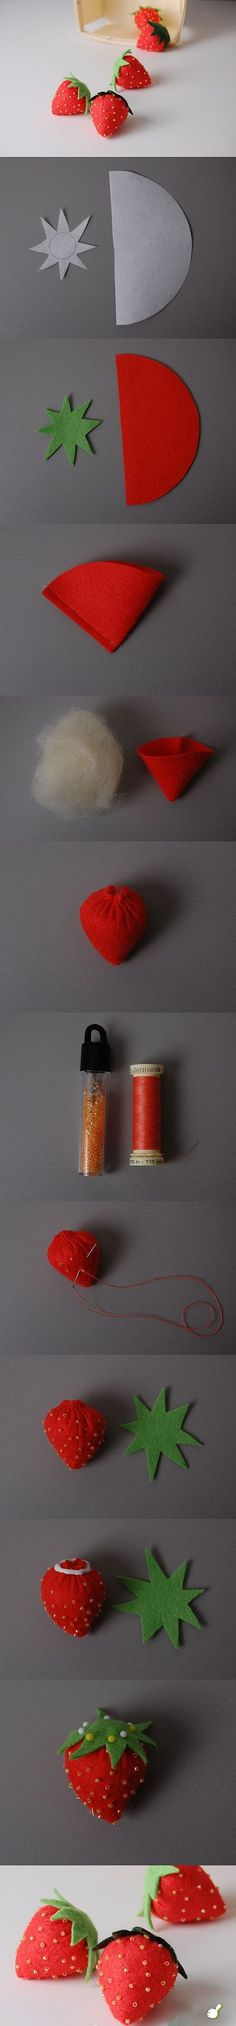 sewn strawberries how to